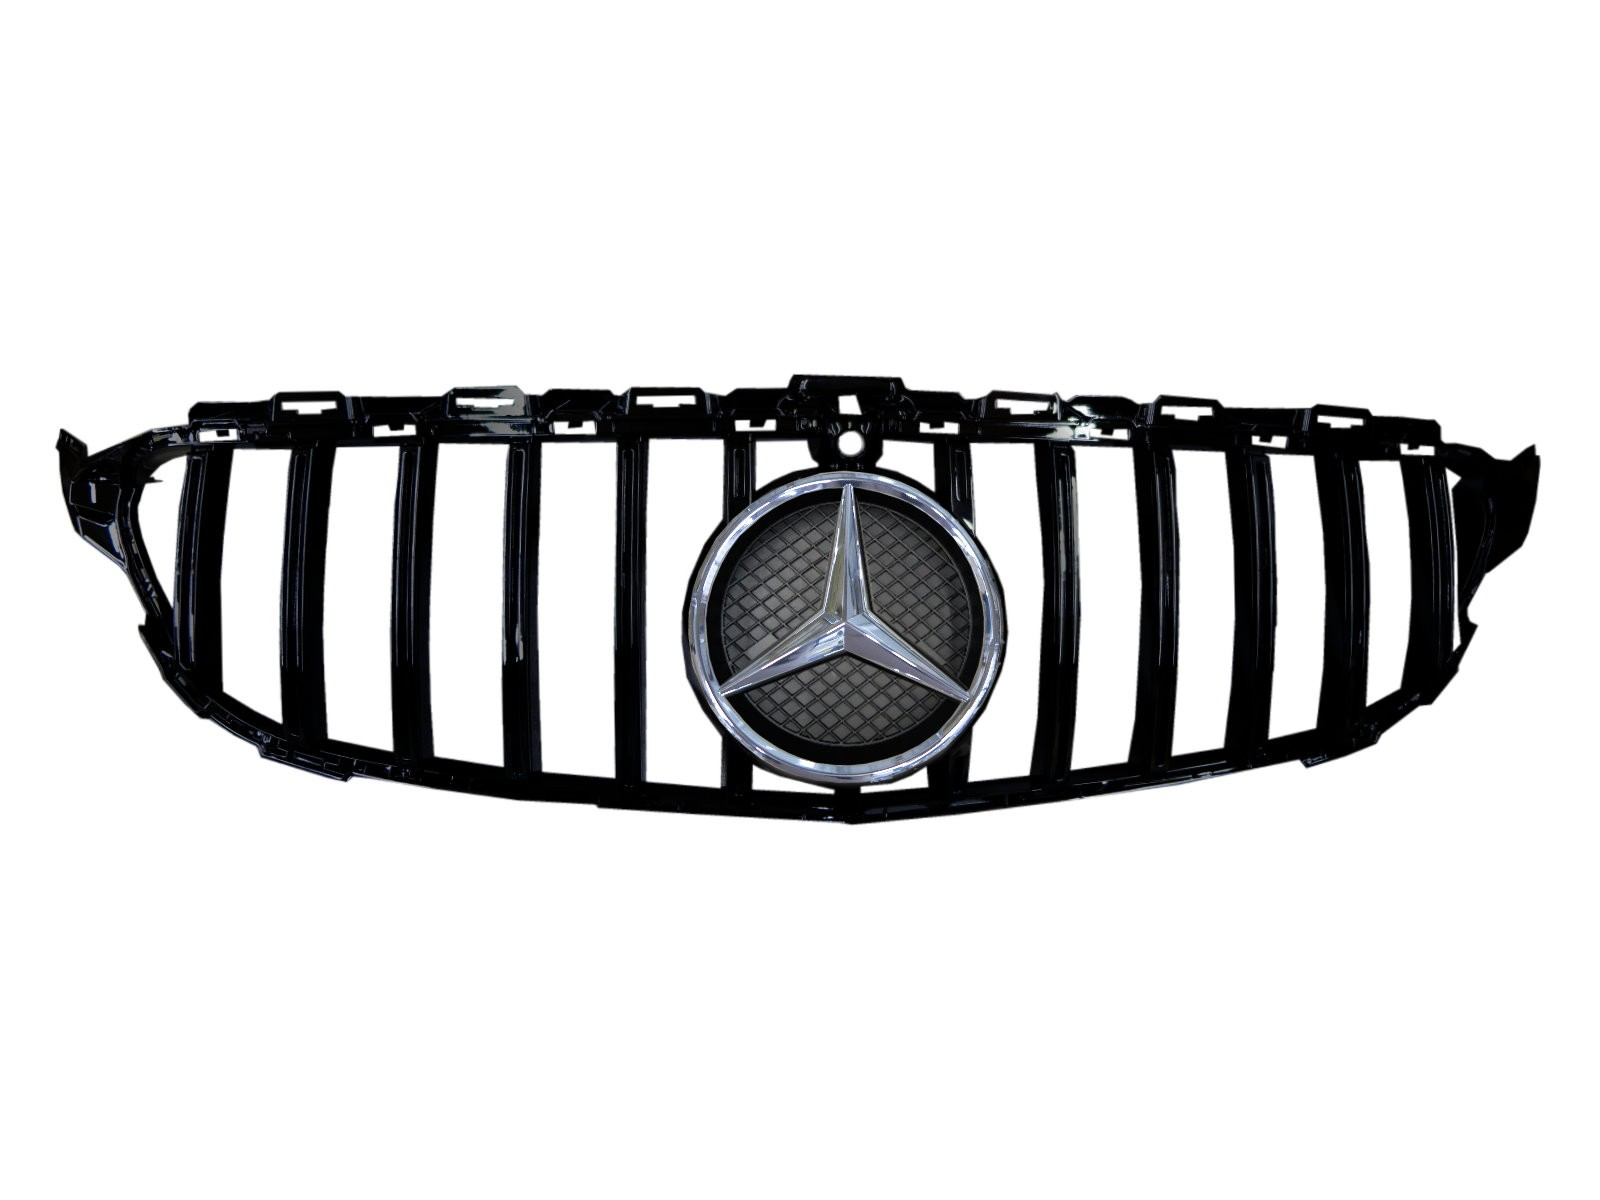 CrazyTheGod C-CLASS W205 2014-2018 Pre-Facelift Sedan 4D Star Emblem W/ Camera Hole GRILLE/GRILL Gloss Black for Mercedes-Benz